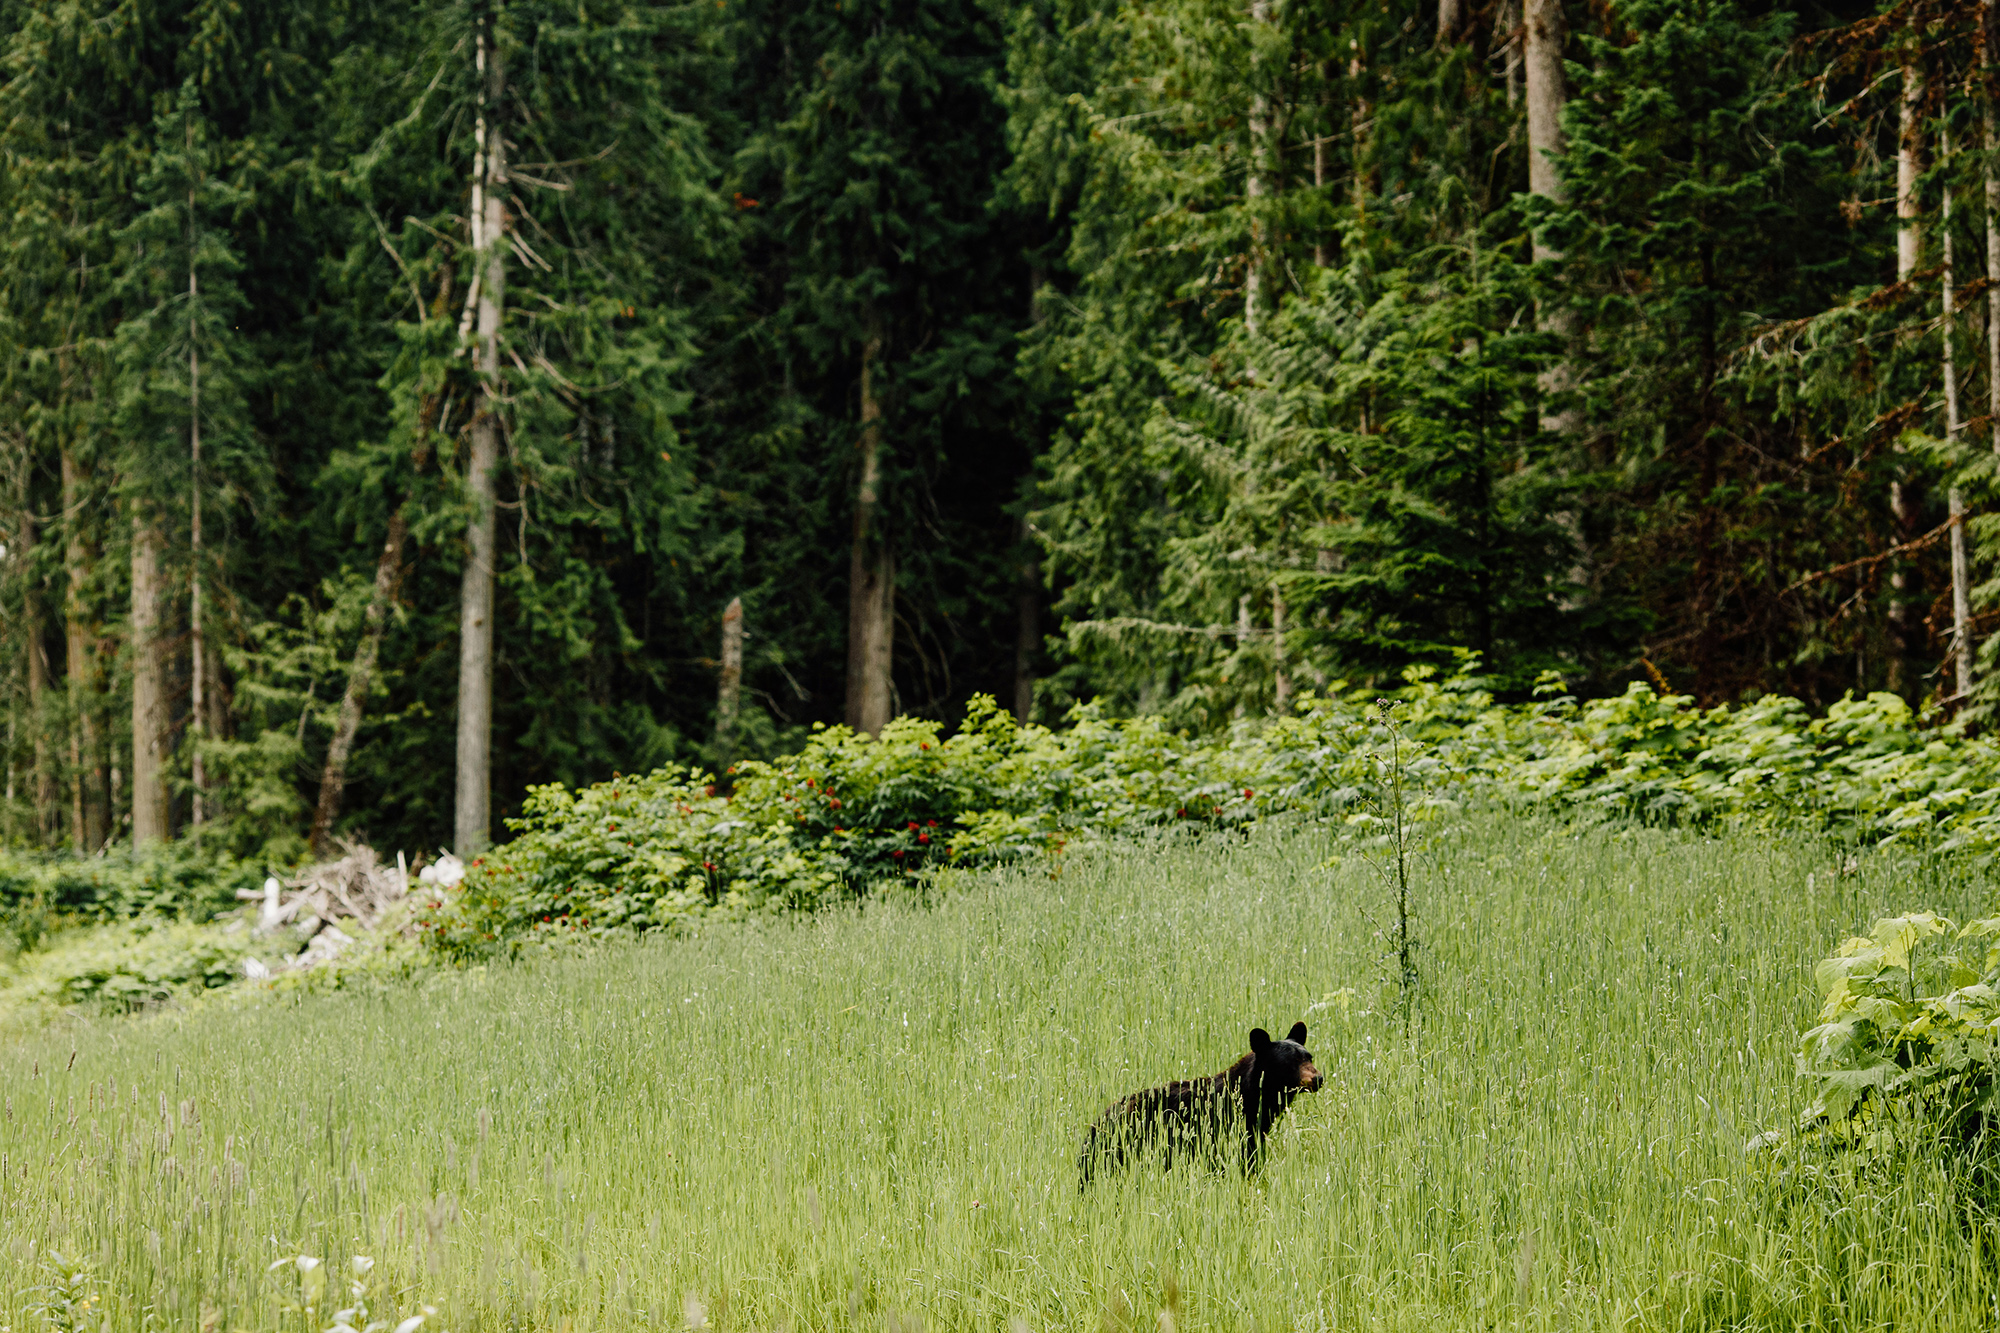 A black bear rests beside a logging road cut through the inland temperate rainforest.